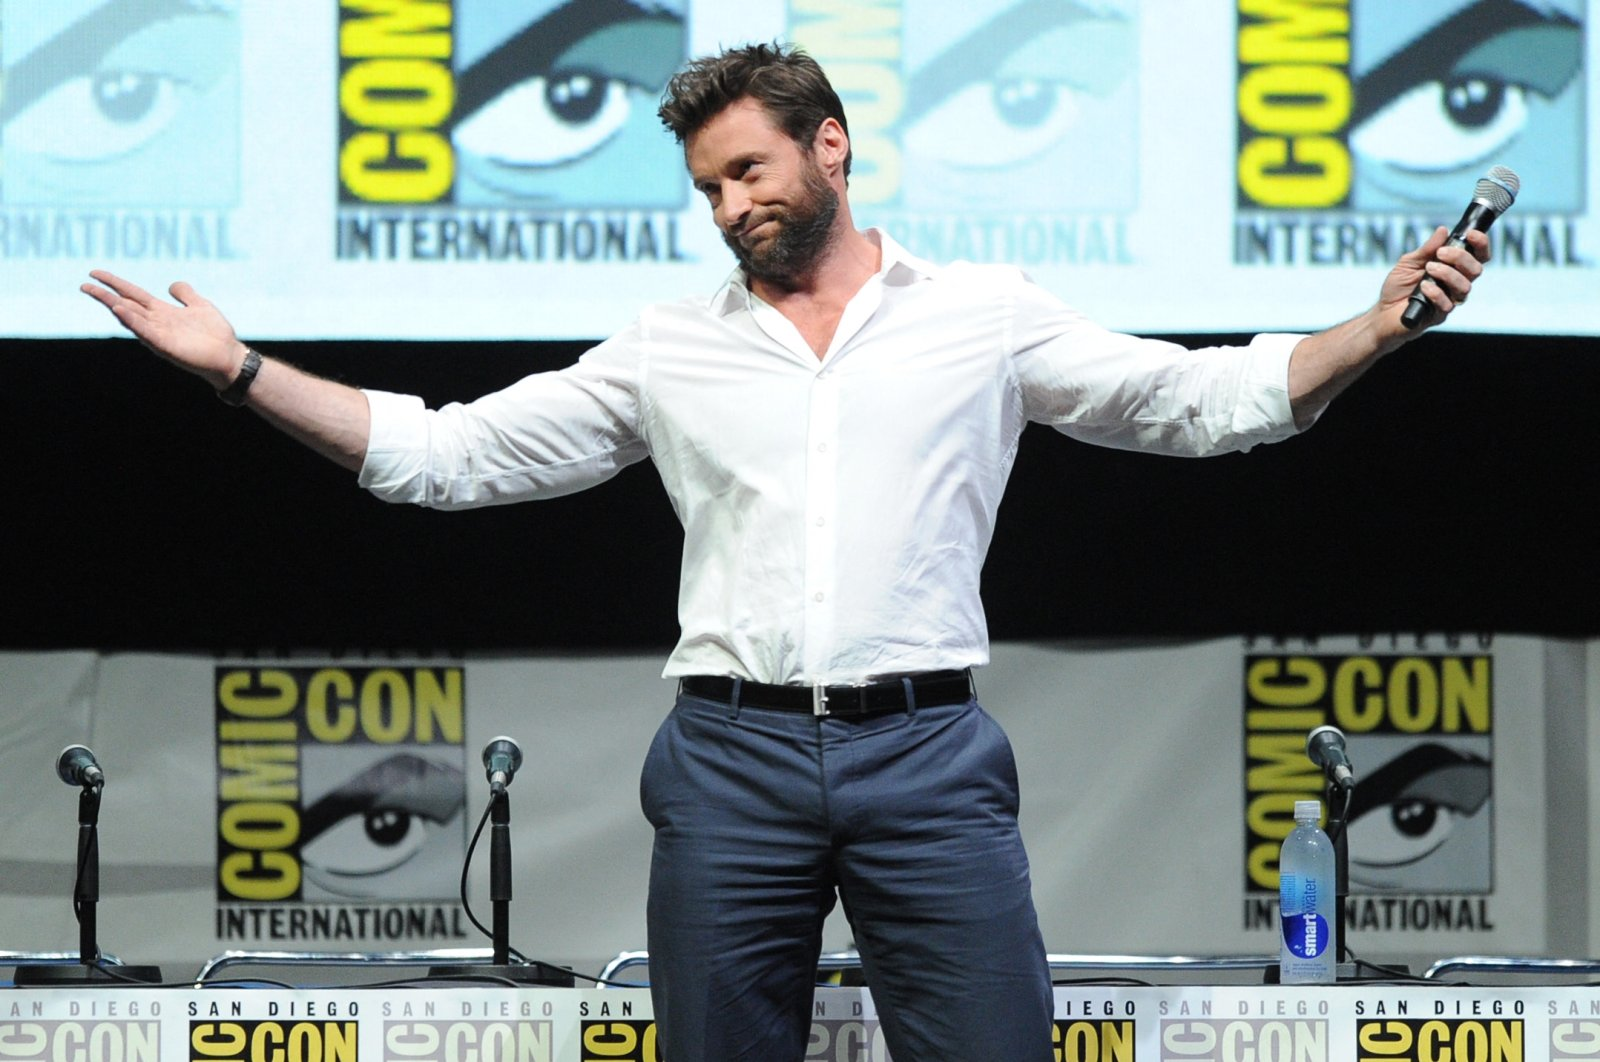 """Actor Hugh Jackman speaks at the20th Century Fox """"X-Men: Days of Future Past"""" panel during Comic-Con International 2013 at San Diego Convention Center in San Diego, California, U.S., July 20, 2013. (AFP Photo)"""